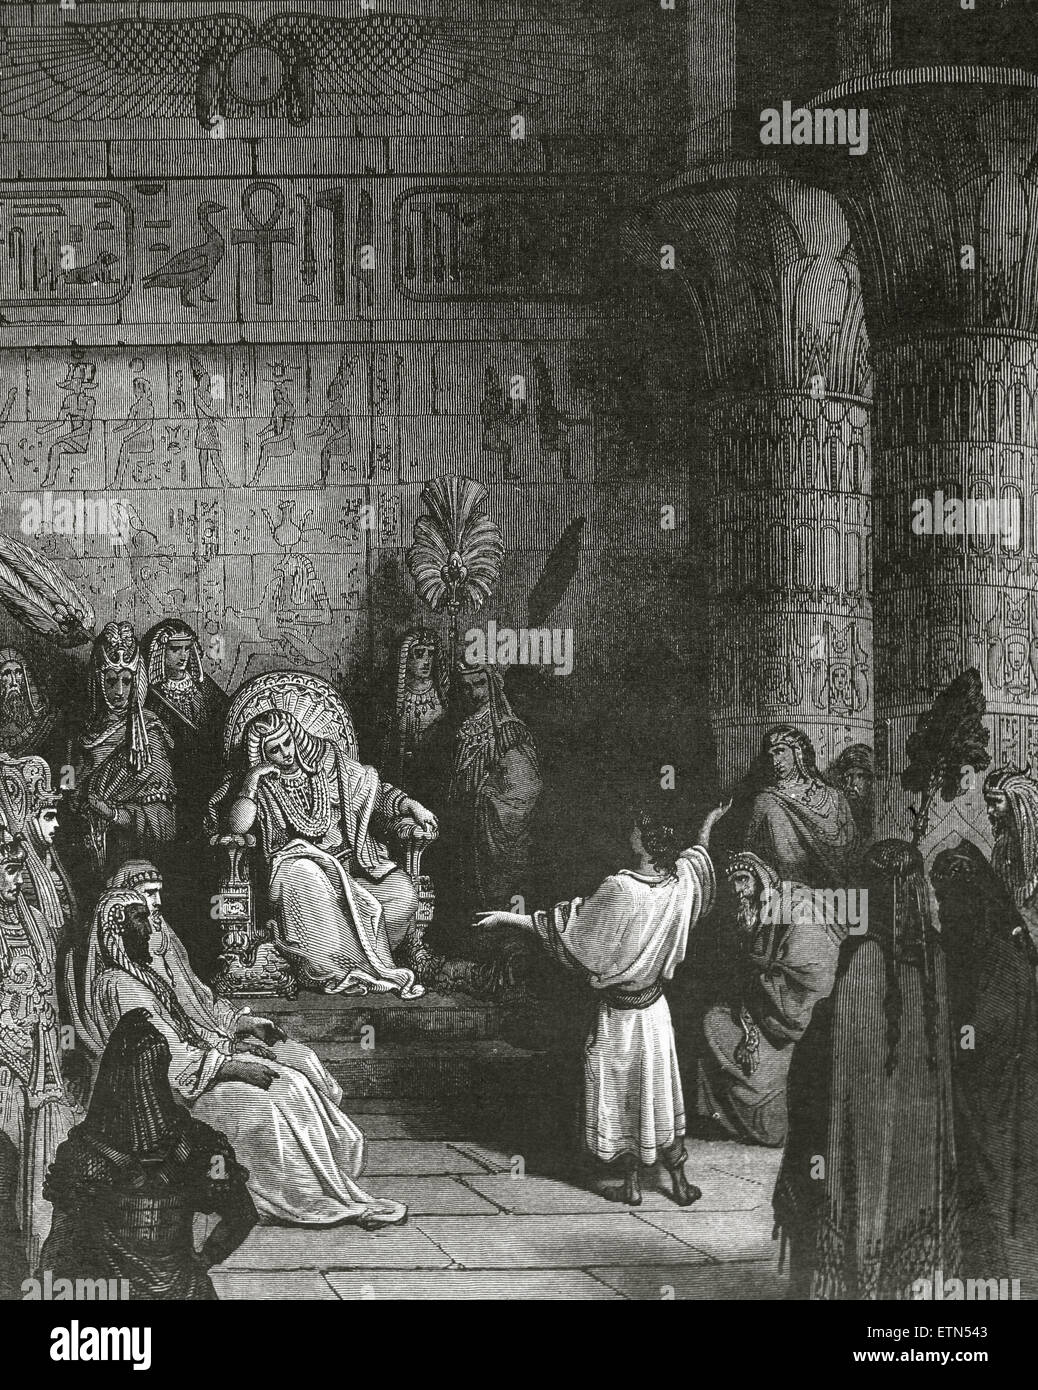 Joseph interprets Pharaoh's dream. Old Testament. Drawings by Gustave Dore. 19th century. - Stock Image